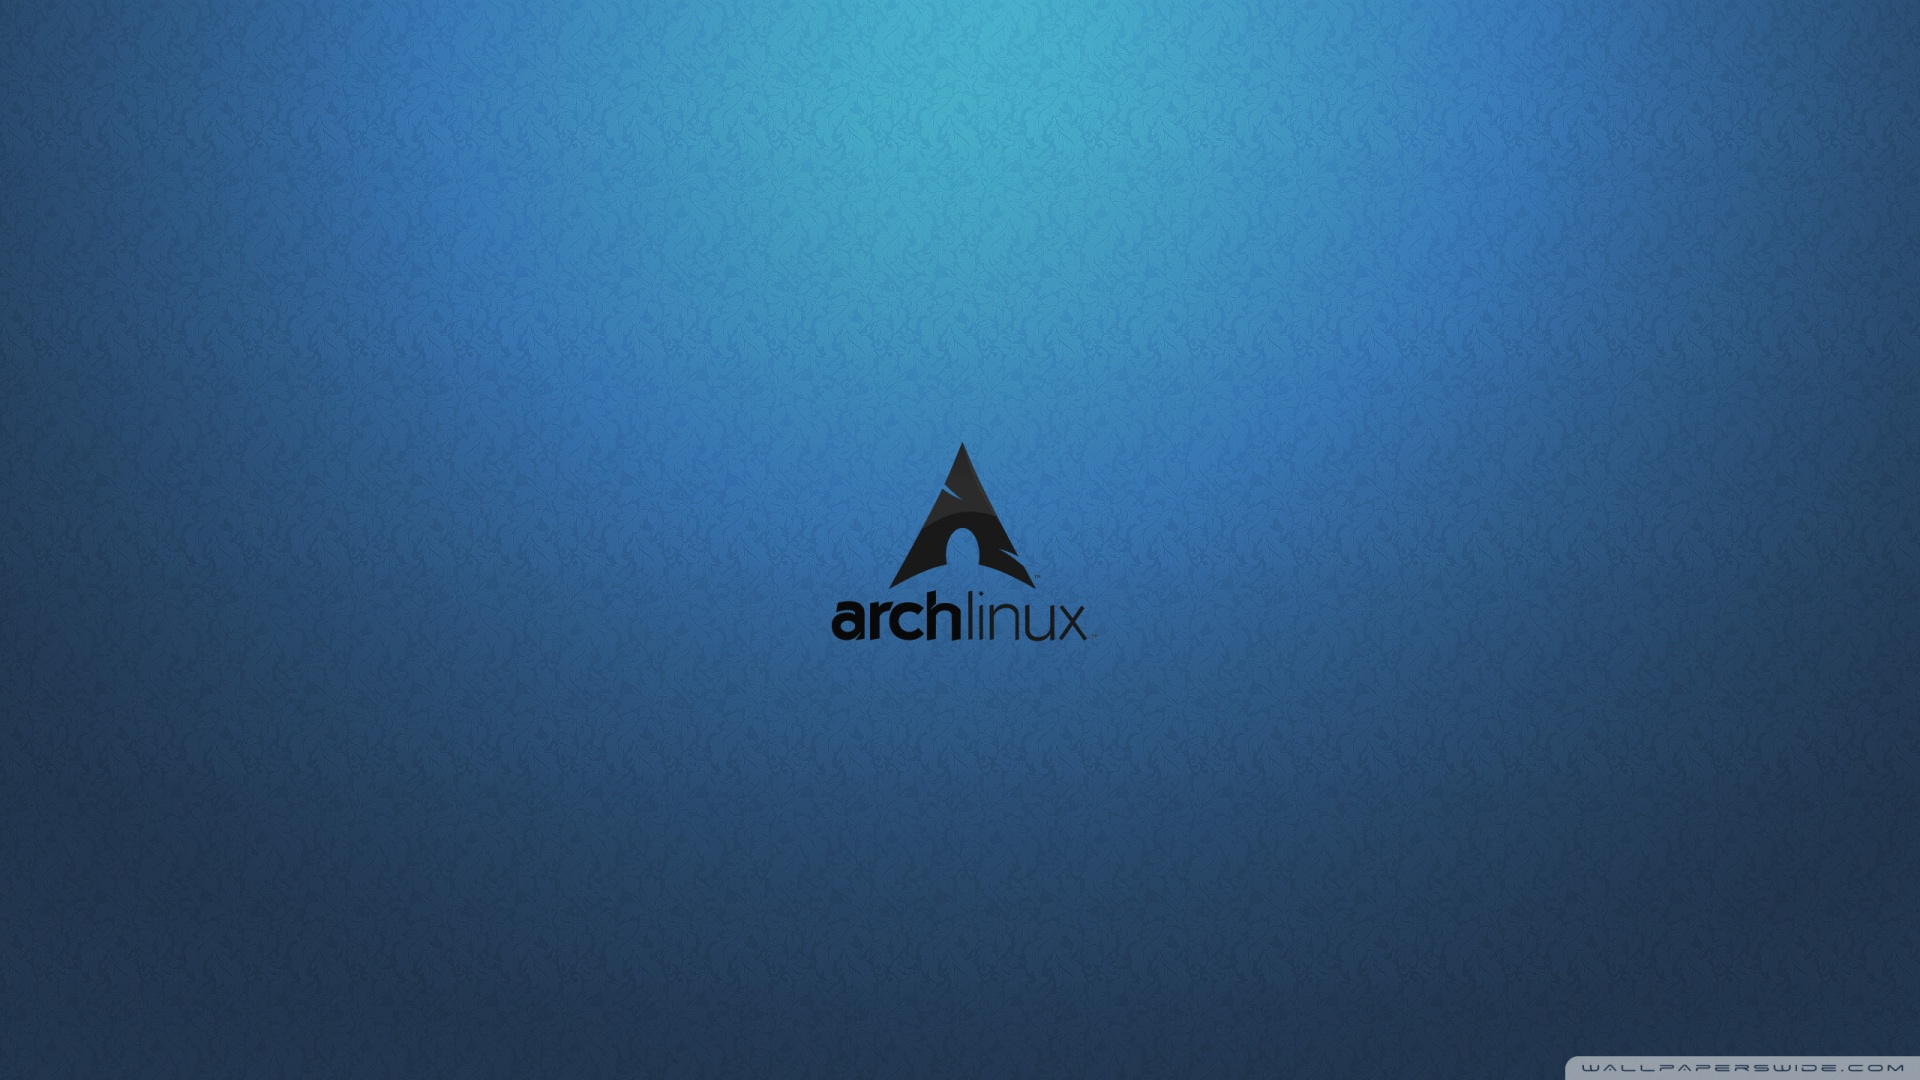 arch linux wallpaper HD 1920x1080